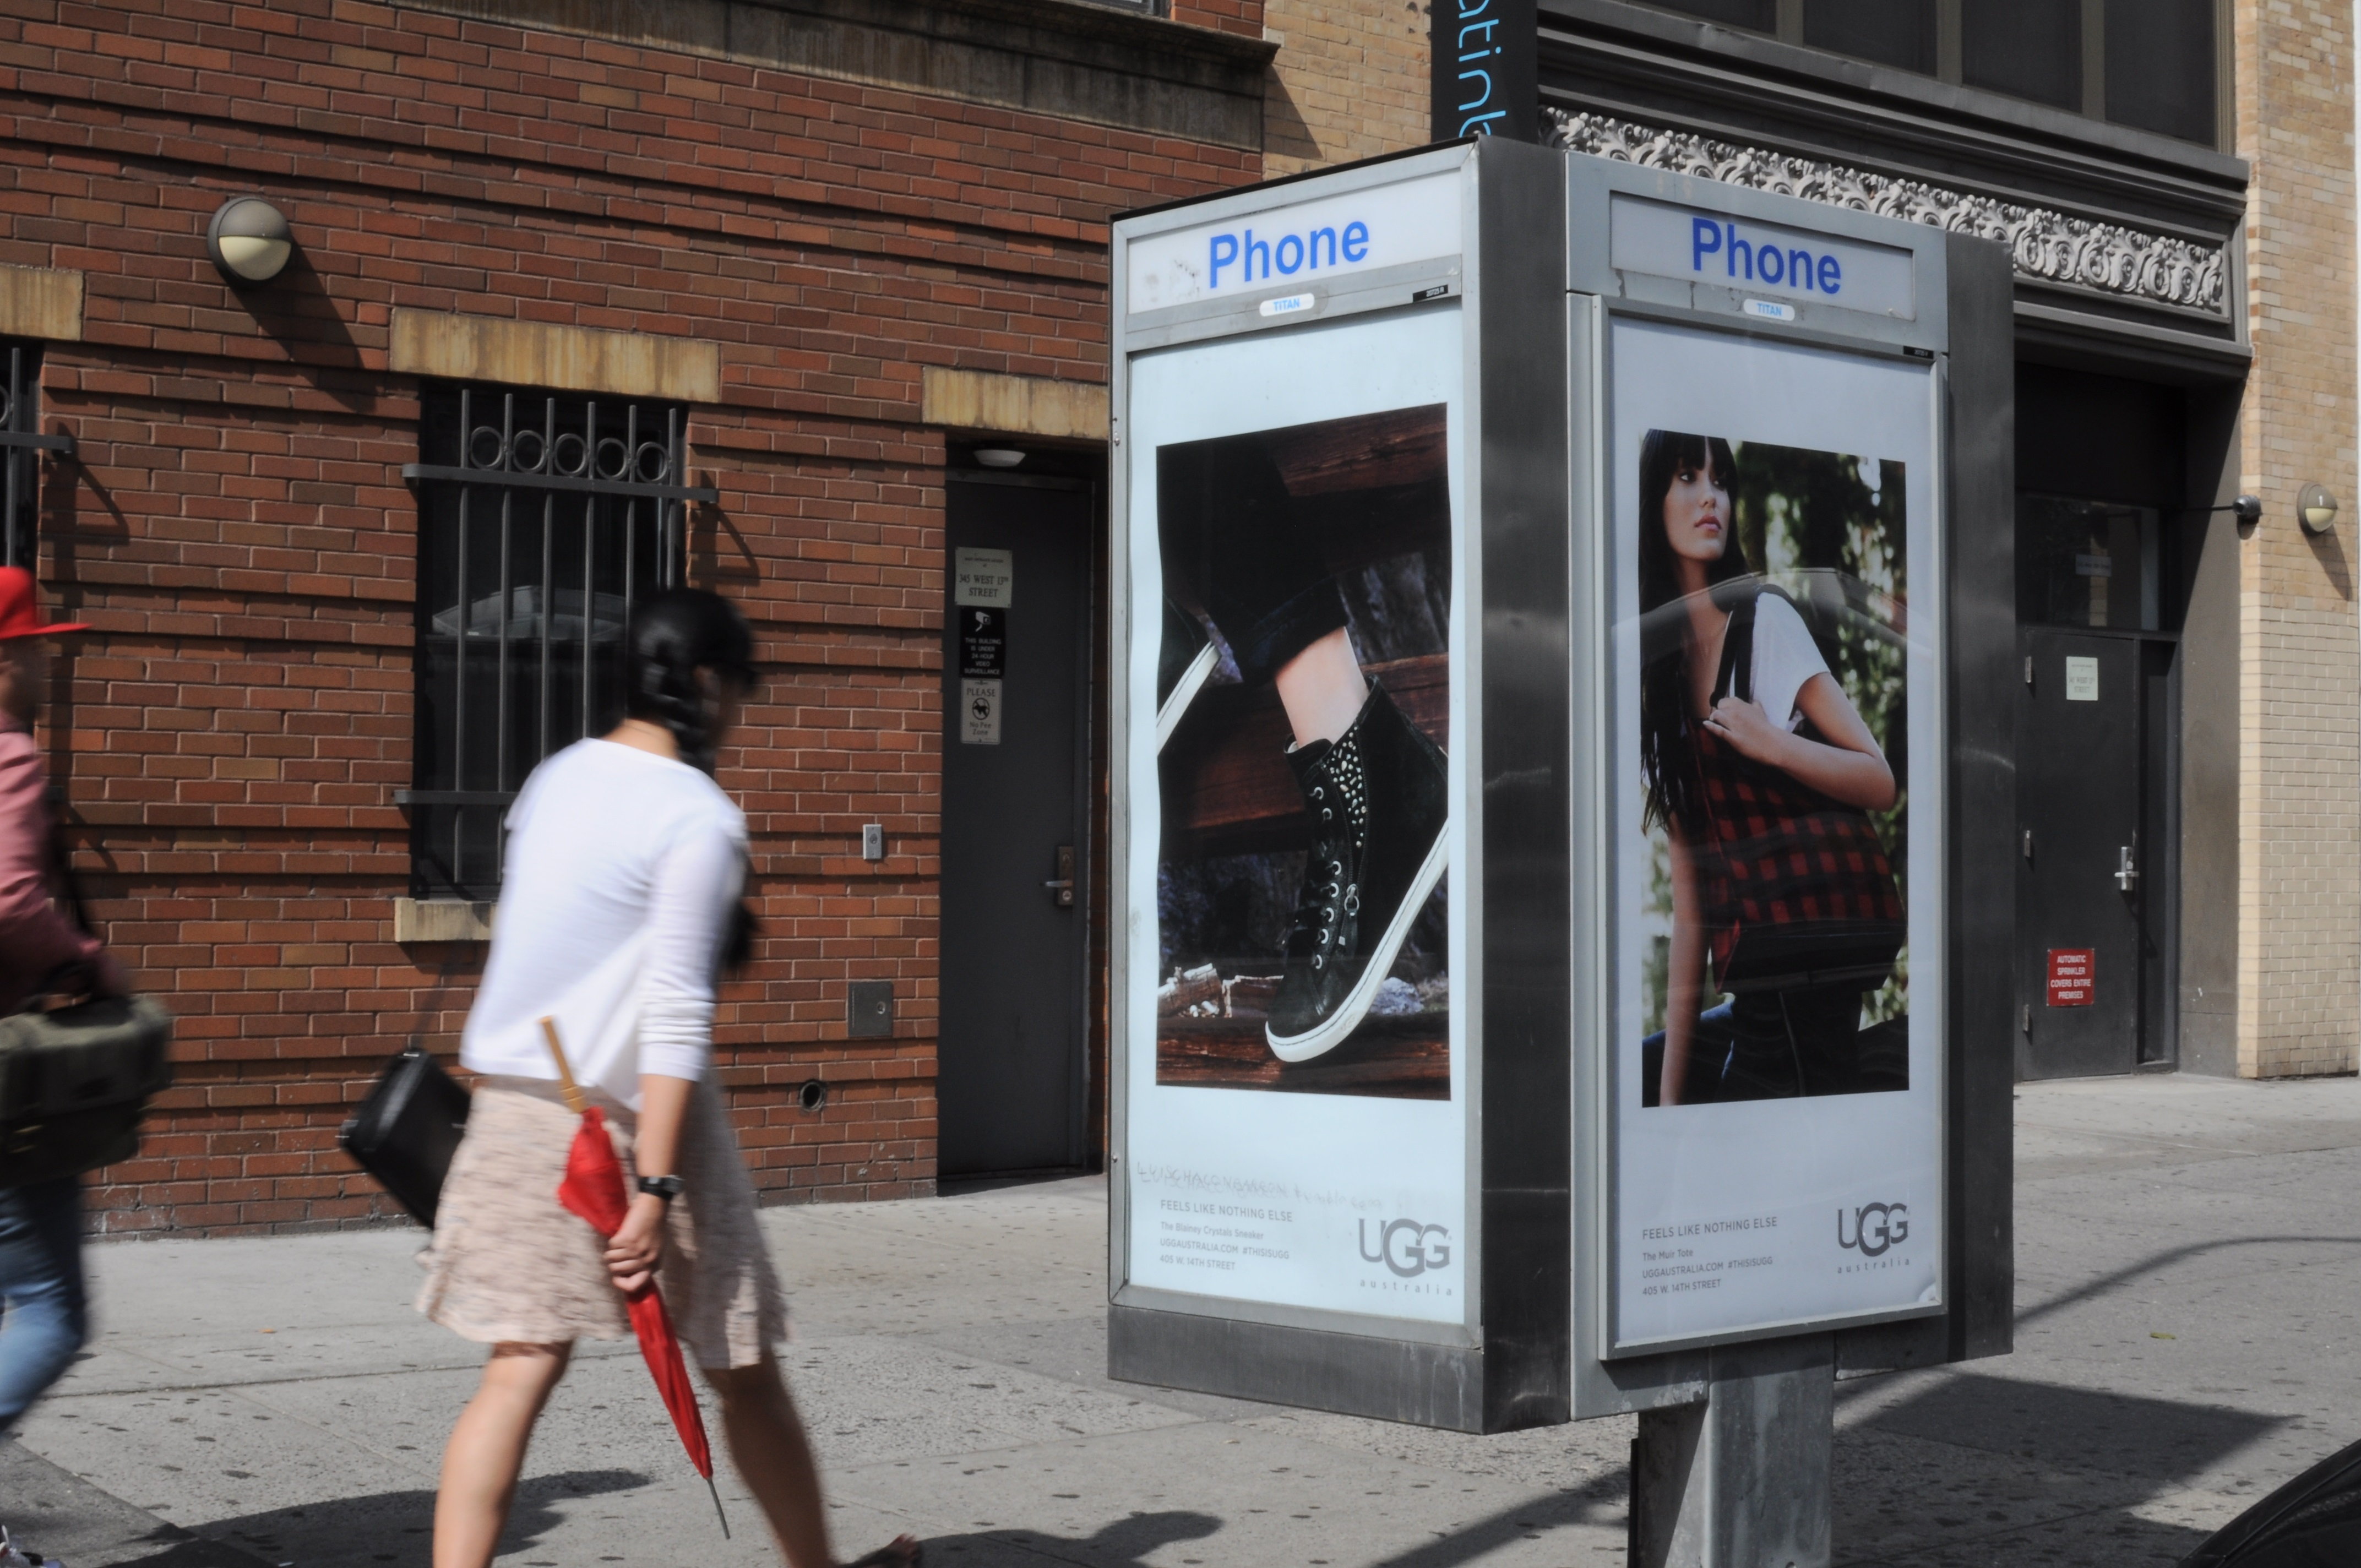 New York Phone Kiosk